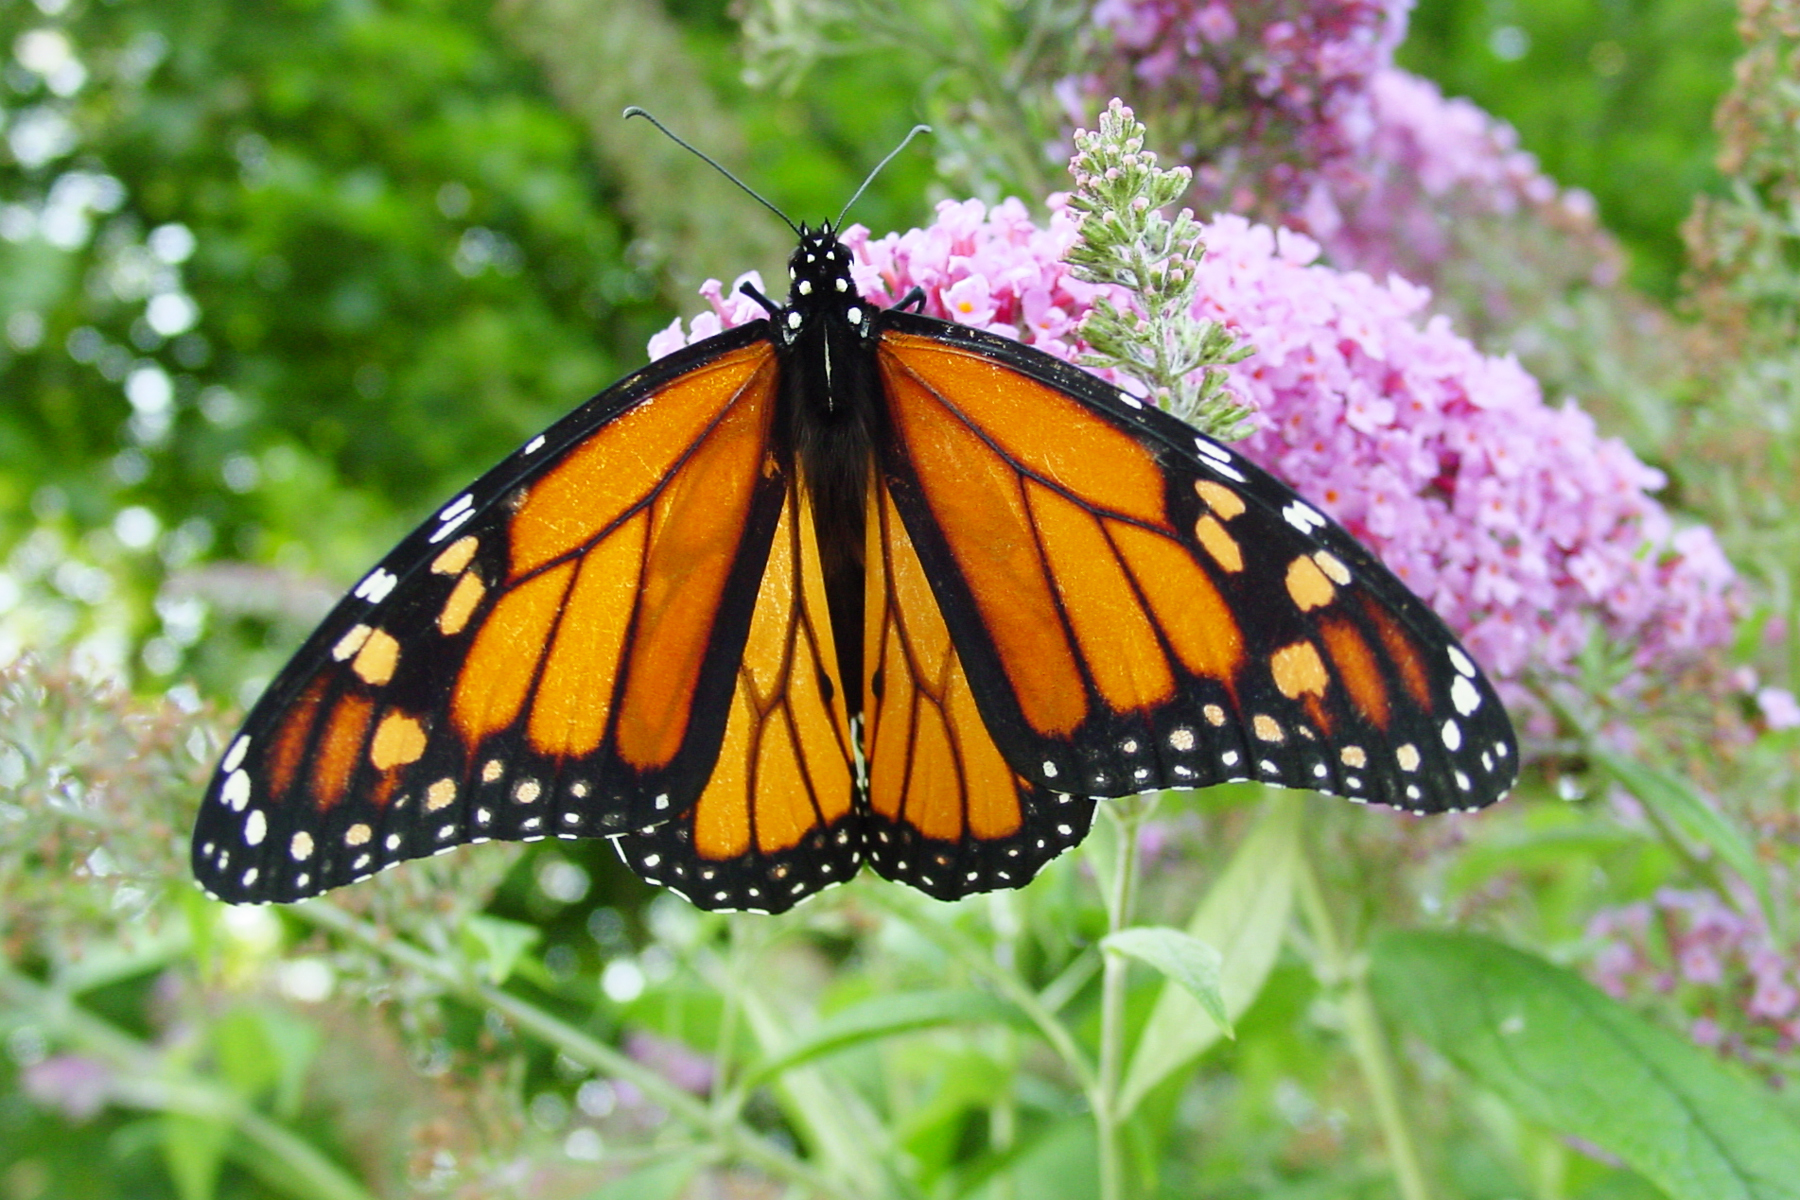 Picture of Monarch Butterfly   Wallpaper Pin it 1800x1200